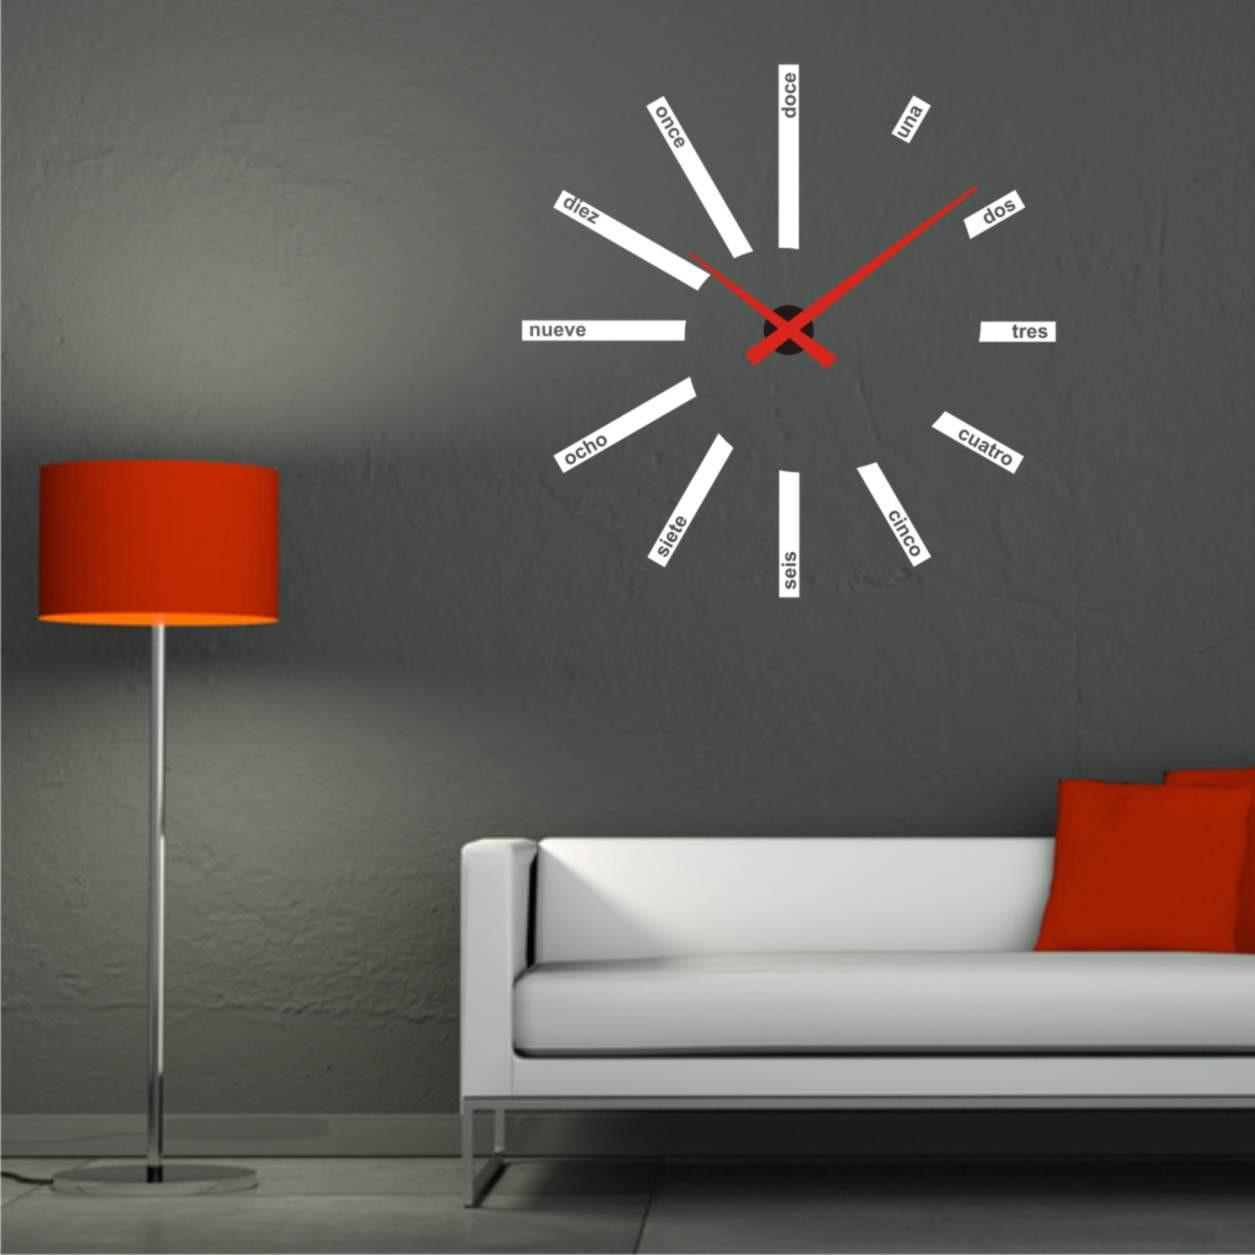 Reloj Gigante De Pared Adorable Tipos De Relojes De Pared ¿cuáles Hay Decoración De Of 39  Innovador Reloj Gigante De Pared